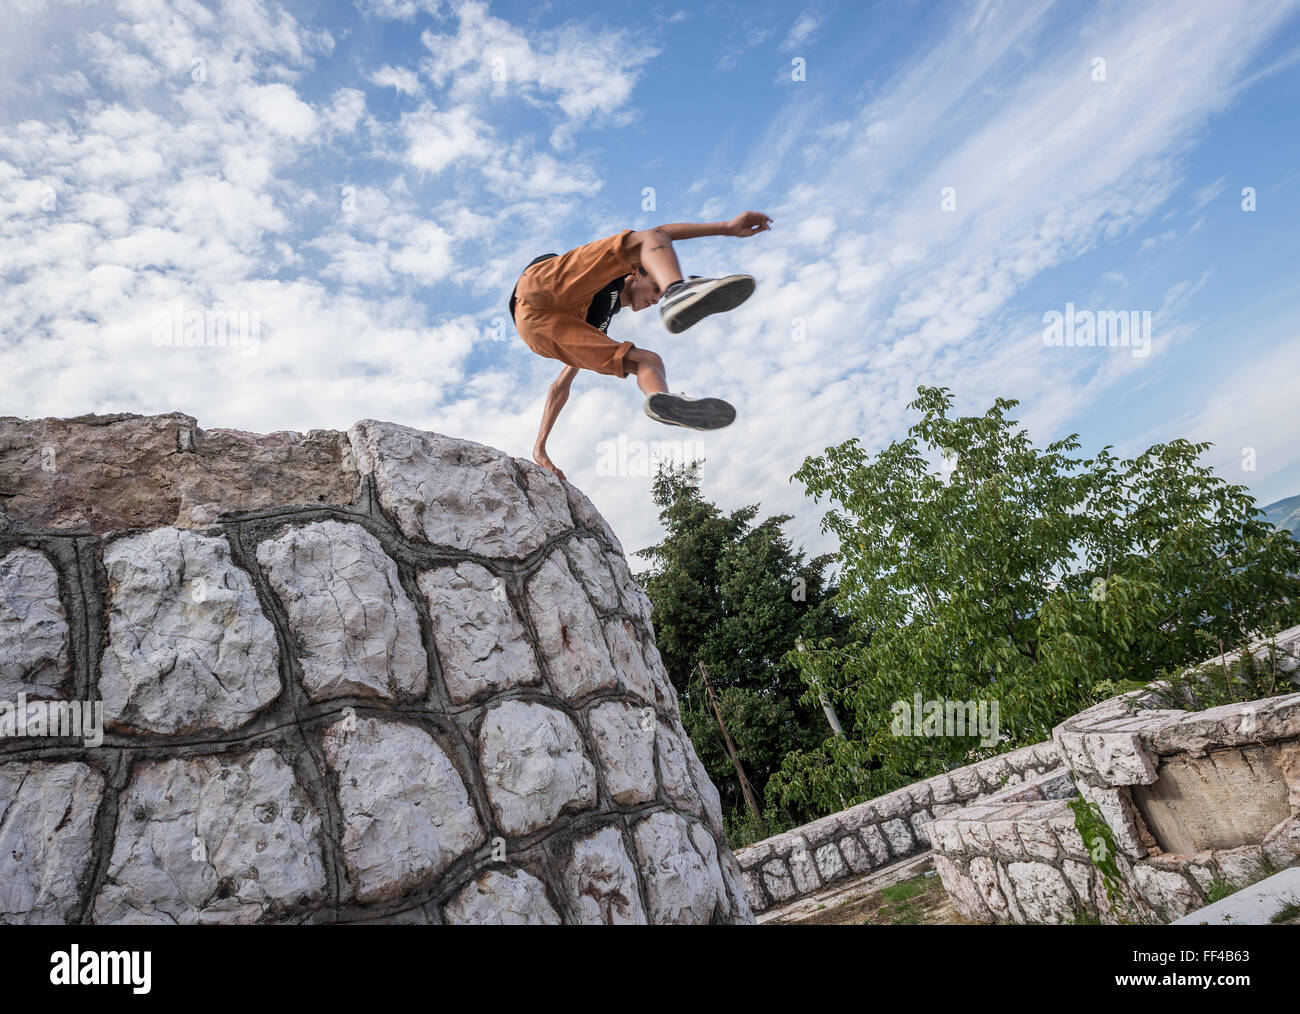 Young boy praticing parkour in Vraca Memorial Park, Sarajevo, Bosnia and Herzegovina - Stock Image